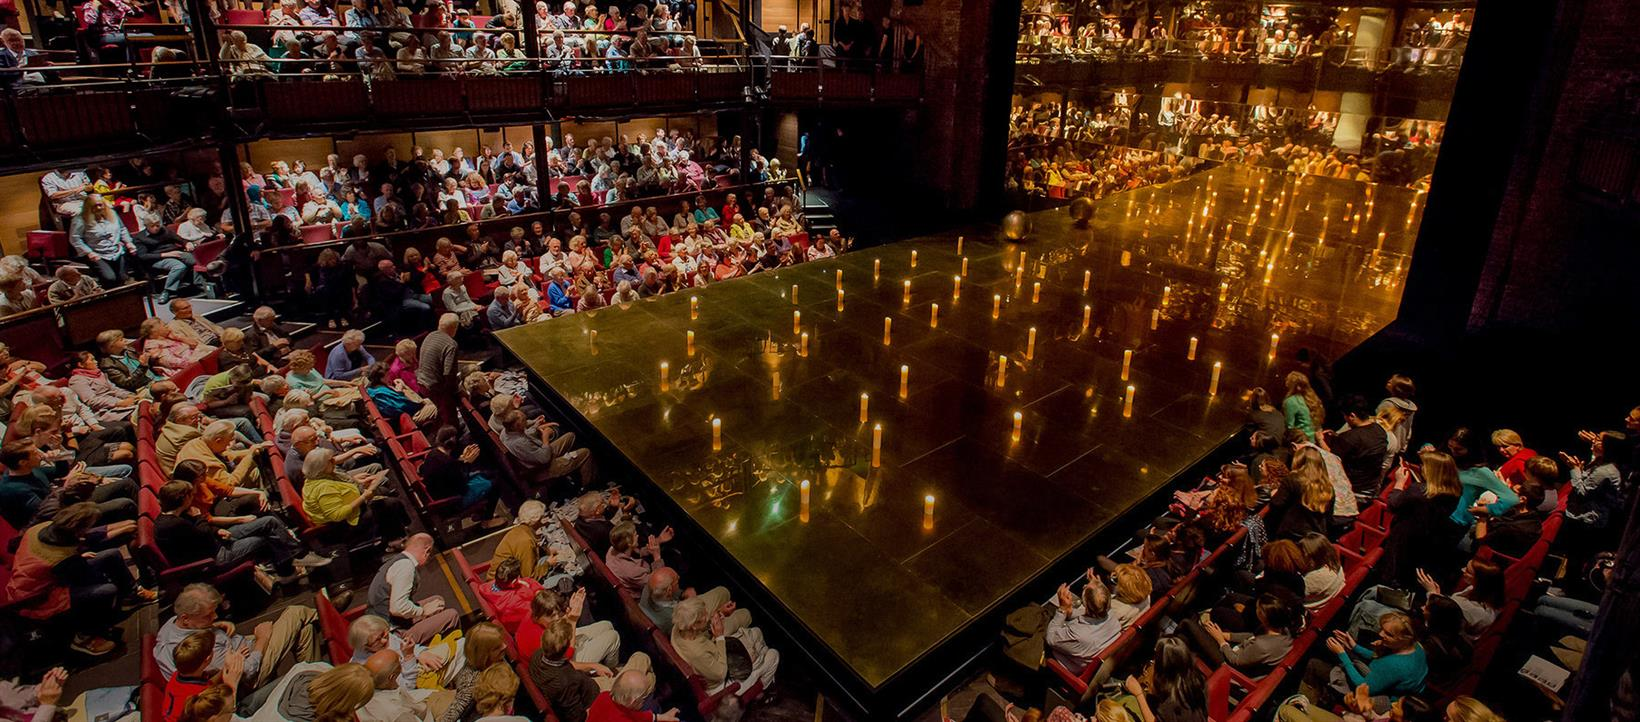 Audience at the Royal Shakespeare Theatre in Stratford-upon-Avon